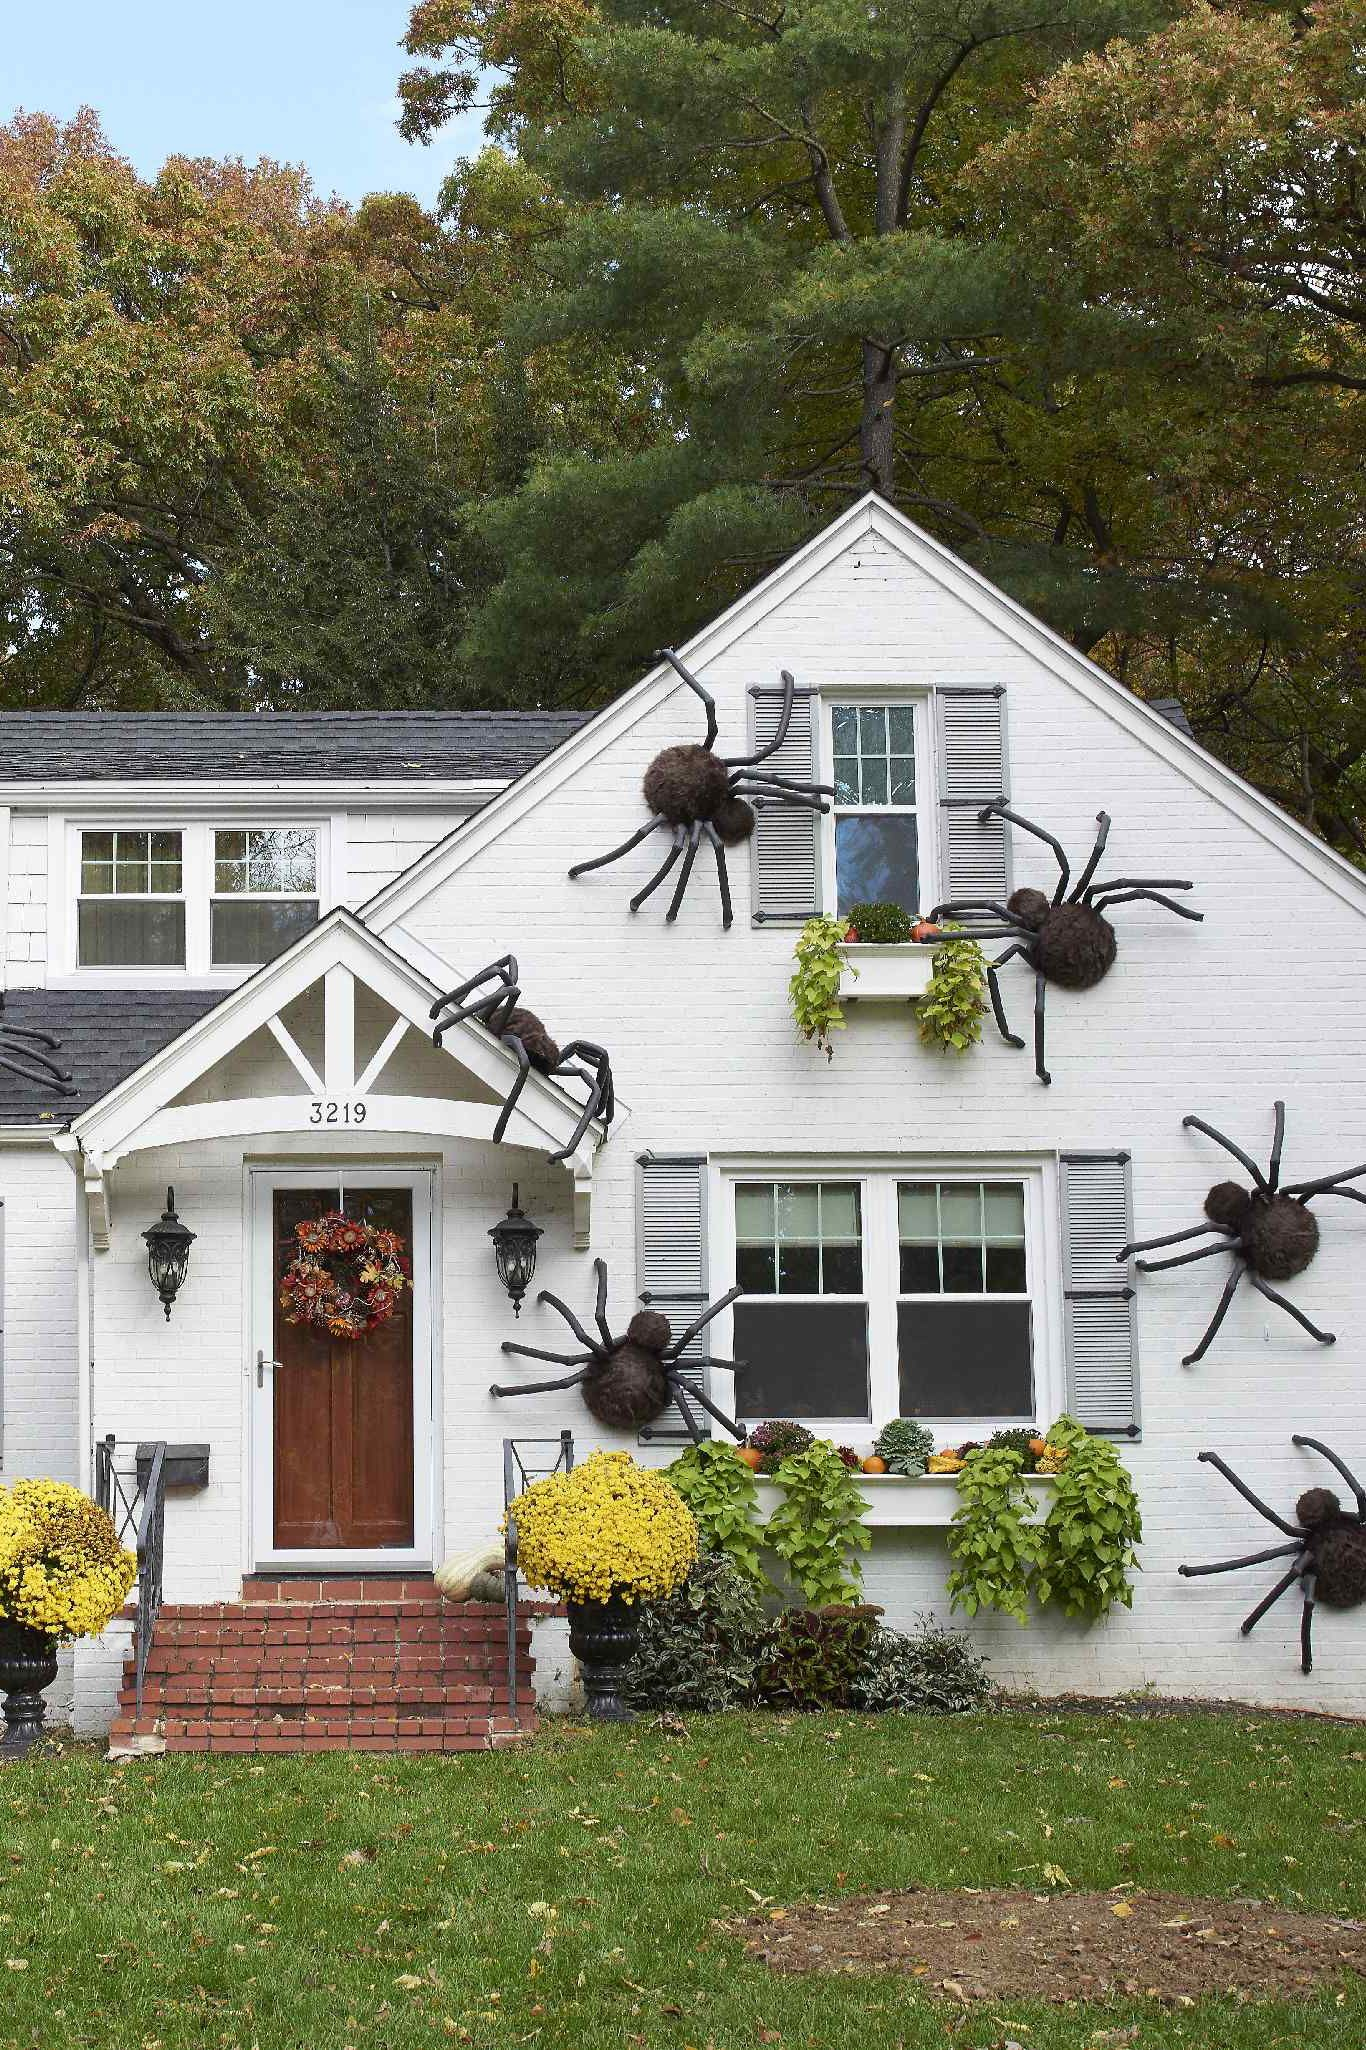 Large Hanging Outdoor Halloween Decorations.47 Easy Halloween Decorations To Make Right Now Outdoor Halloween Easy Halloween Decorations Diy Halloween Decorations